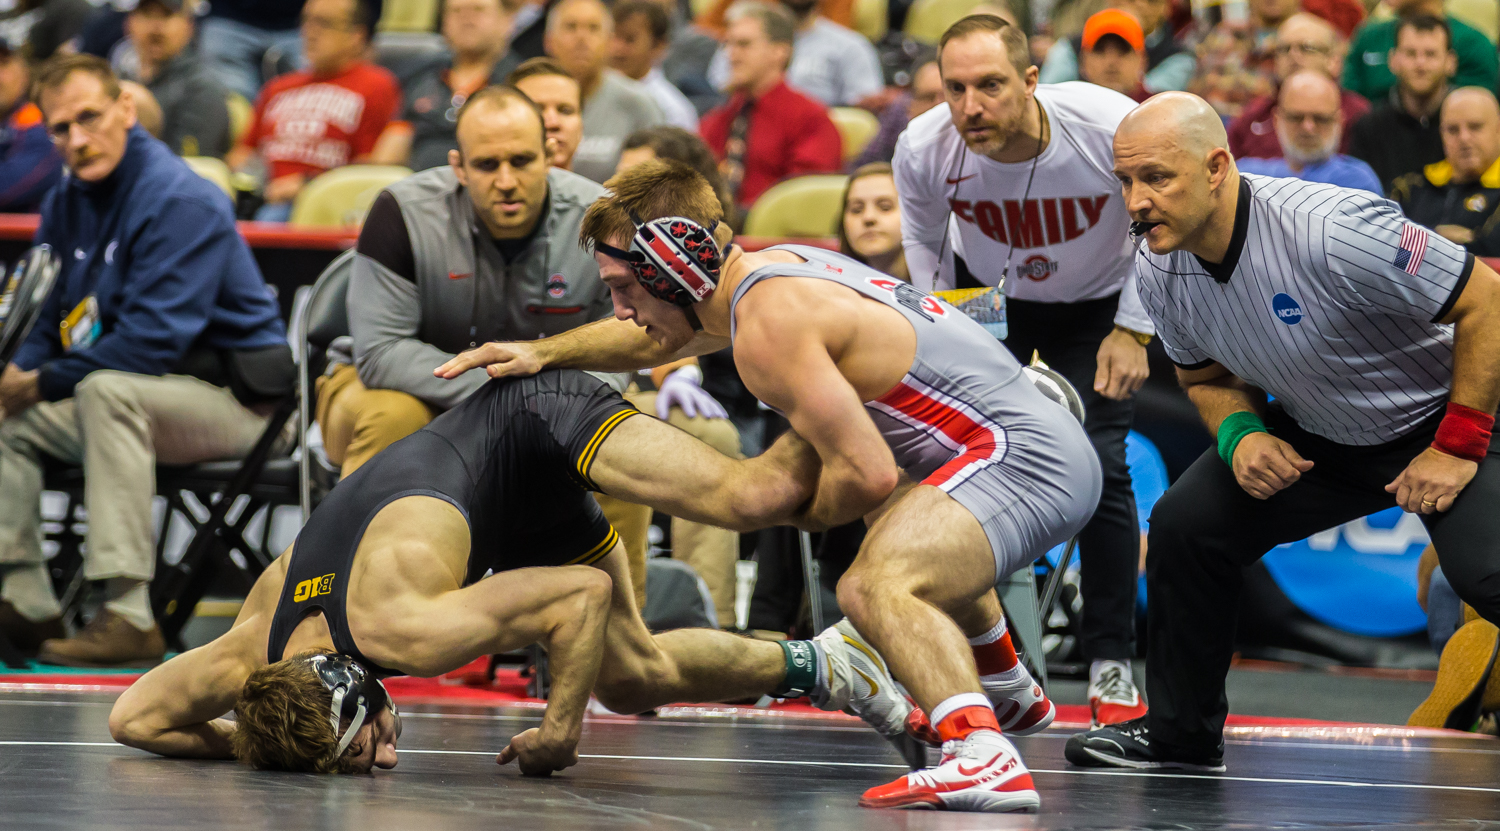 Iowa%E2%80%99s+133-pound+Austin+DeSanto+wrestles+Ohio+State%E2%80%99s+Luke+Pletcher+during+the+fifth+session+of+the+2019+NCAA+D1+Wrestling+Championships+at+the+PPG+Paints+Arena+in+Pittsburgh%2C+PA+on+Saturday%2C+March+23%2C+2019.+Pletcher+won+by+decision%2C+7-6.